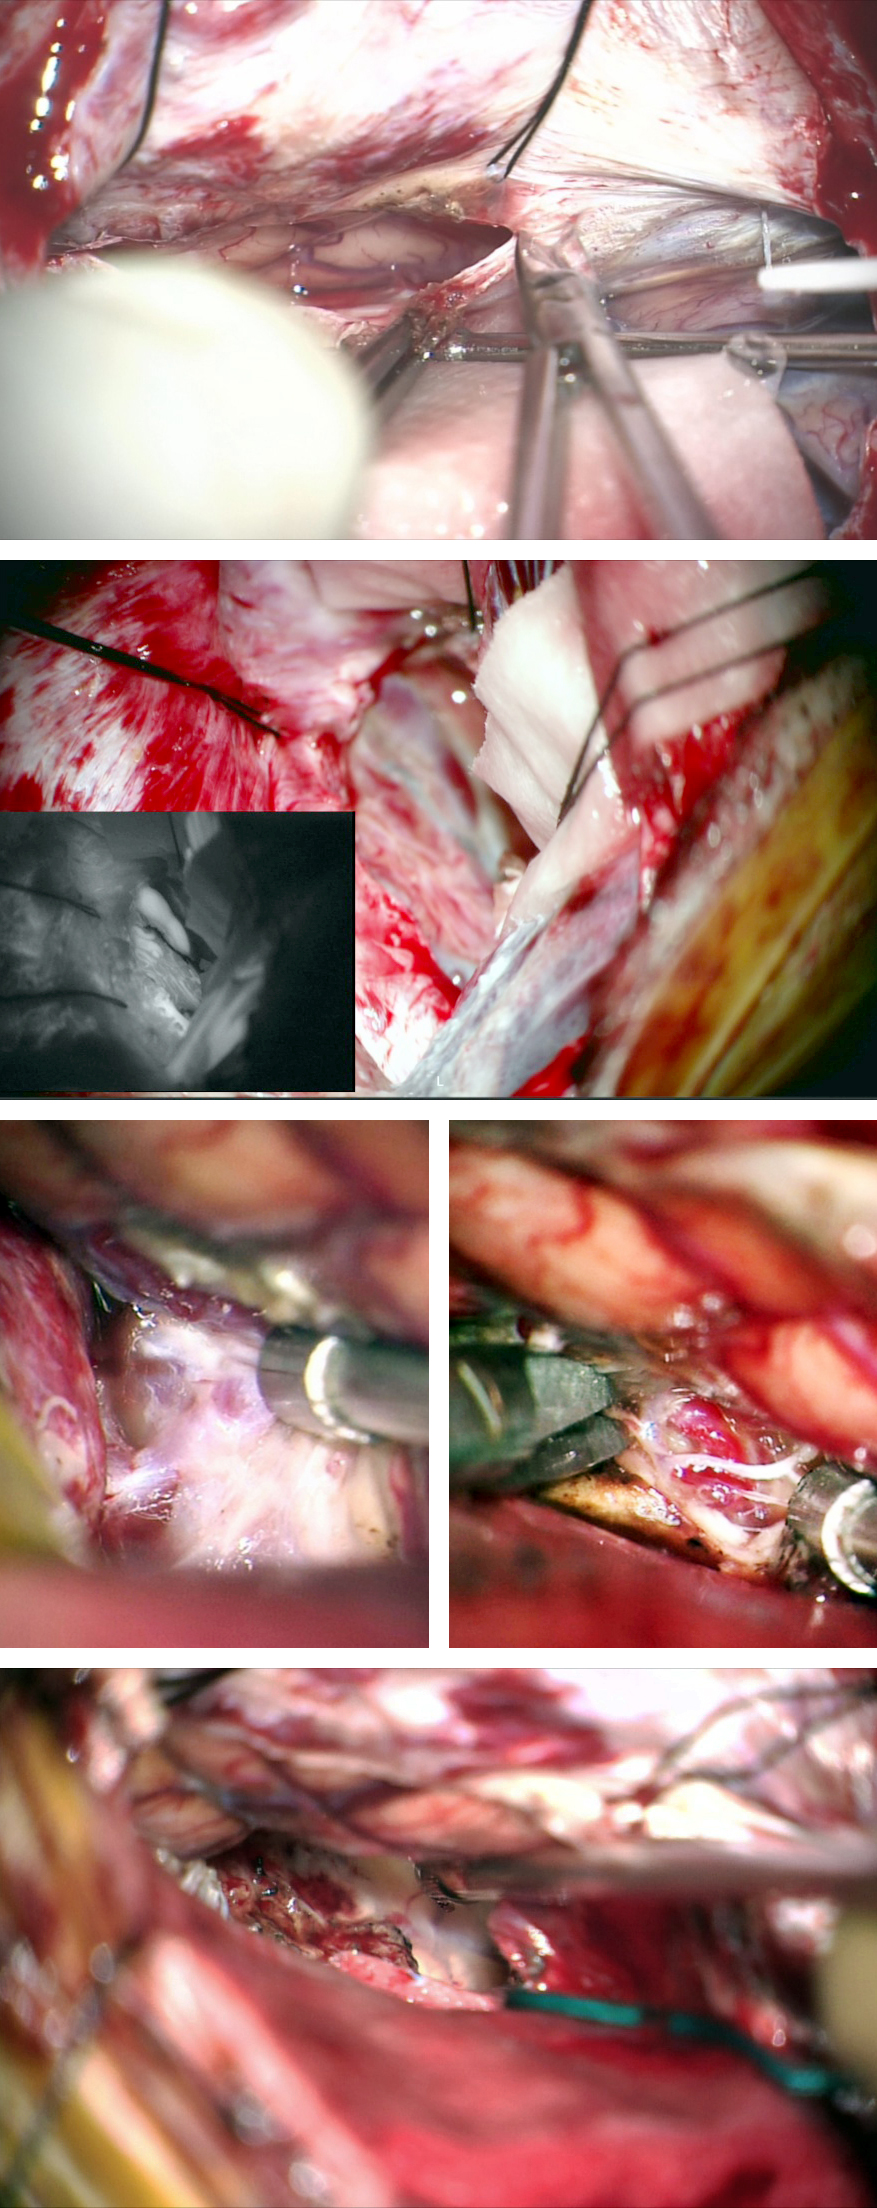 Figure 8: The contralateral interhemispheric transfalcine approach was used for medial parietal AVMs with extension toward the trigone. Note the transfalcine incisions to exposure the AVM in the top two images. The retention sutures in the falx and the falcine flaps maintained the exposure to the medial hemisphere. The draining veins and feeding arteries were readily exposed and nidus removal unveiled the atrium (lower two rows).